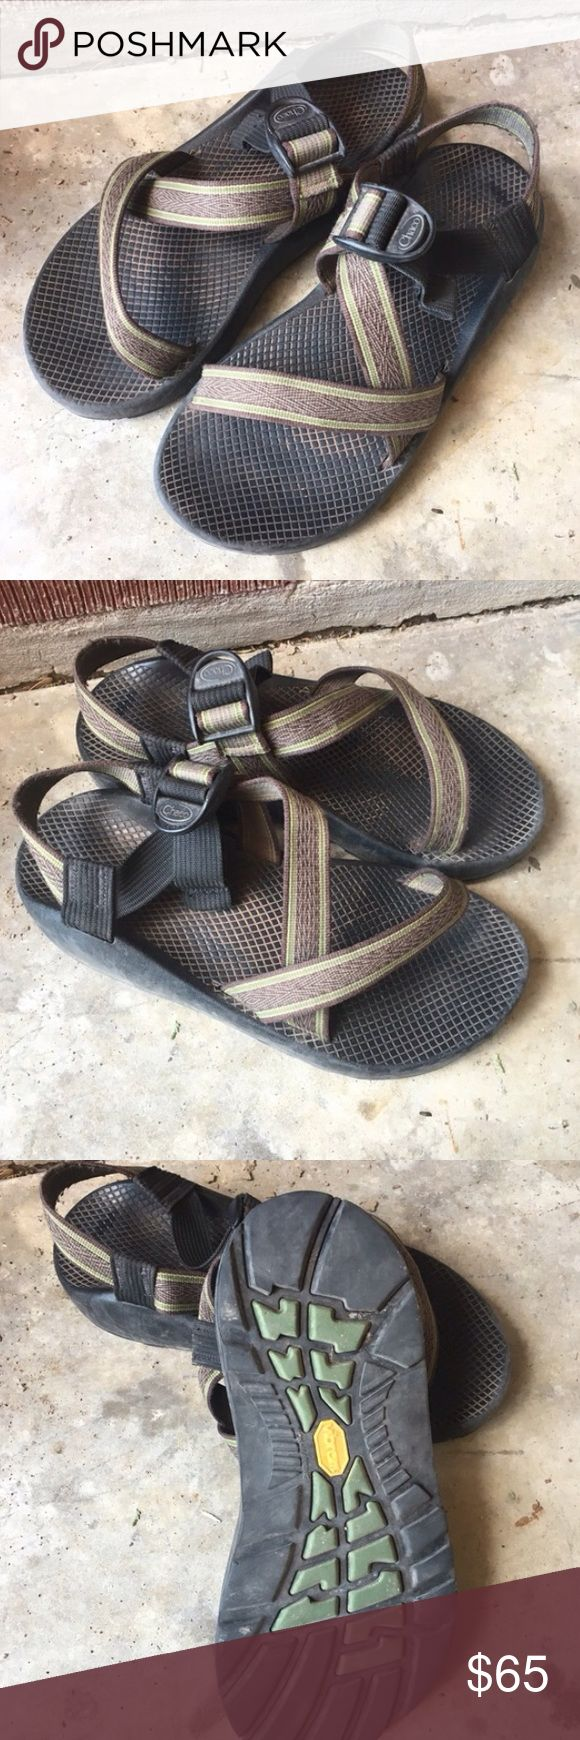 1000 ideas about chaco shoes on chaco sandals